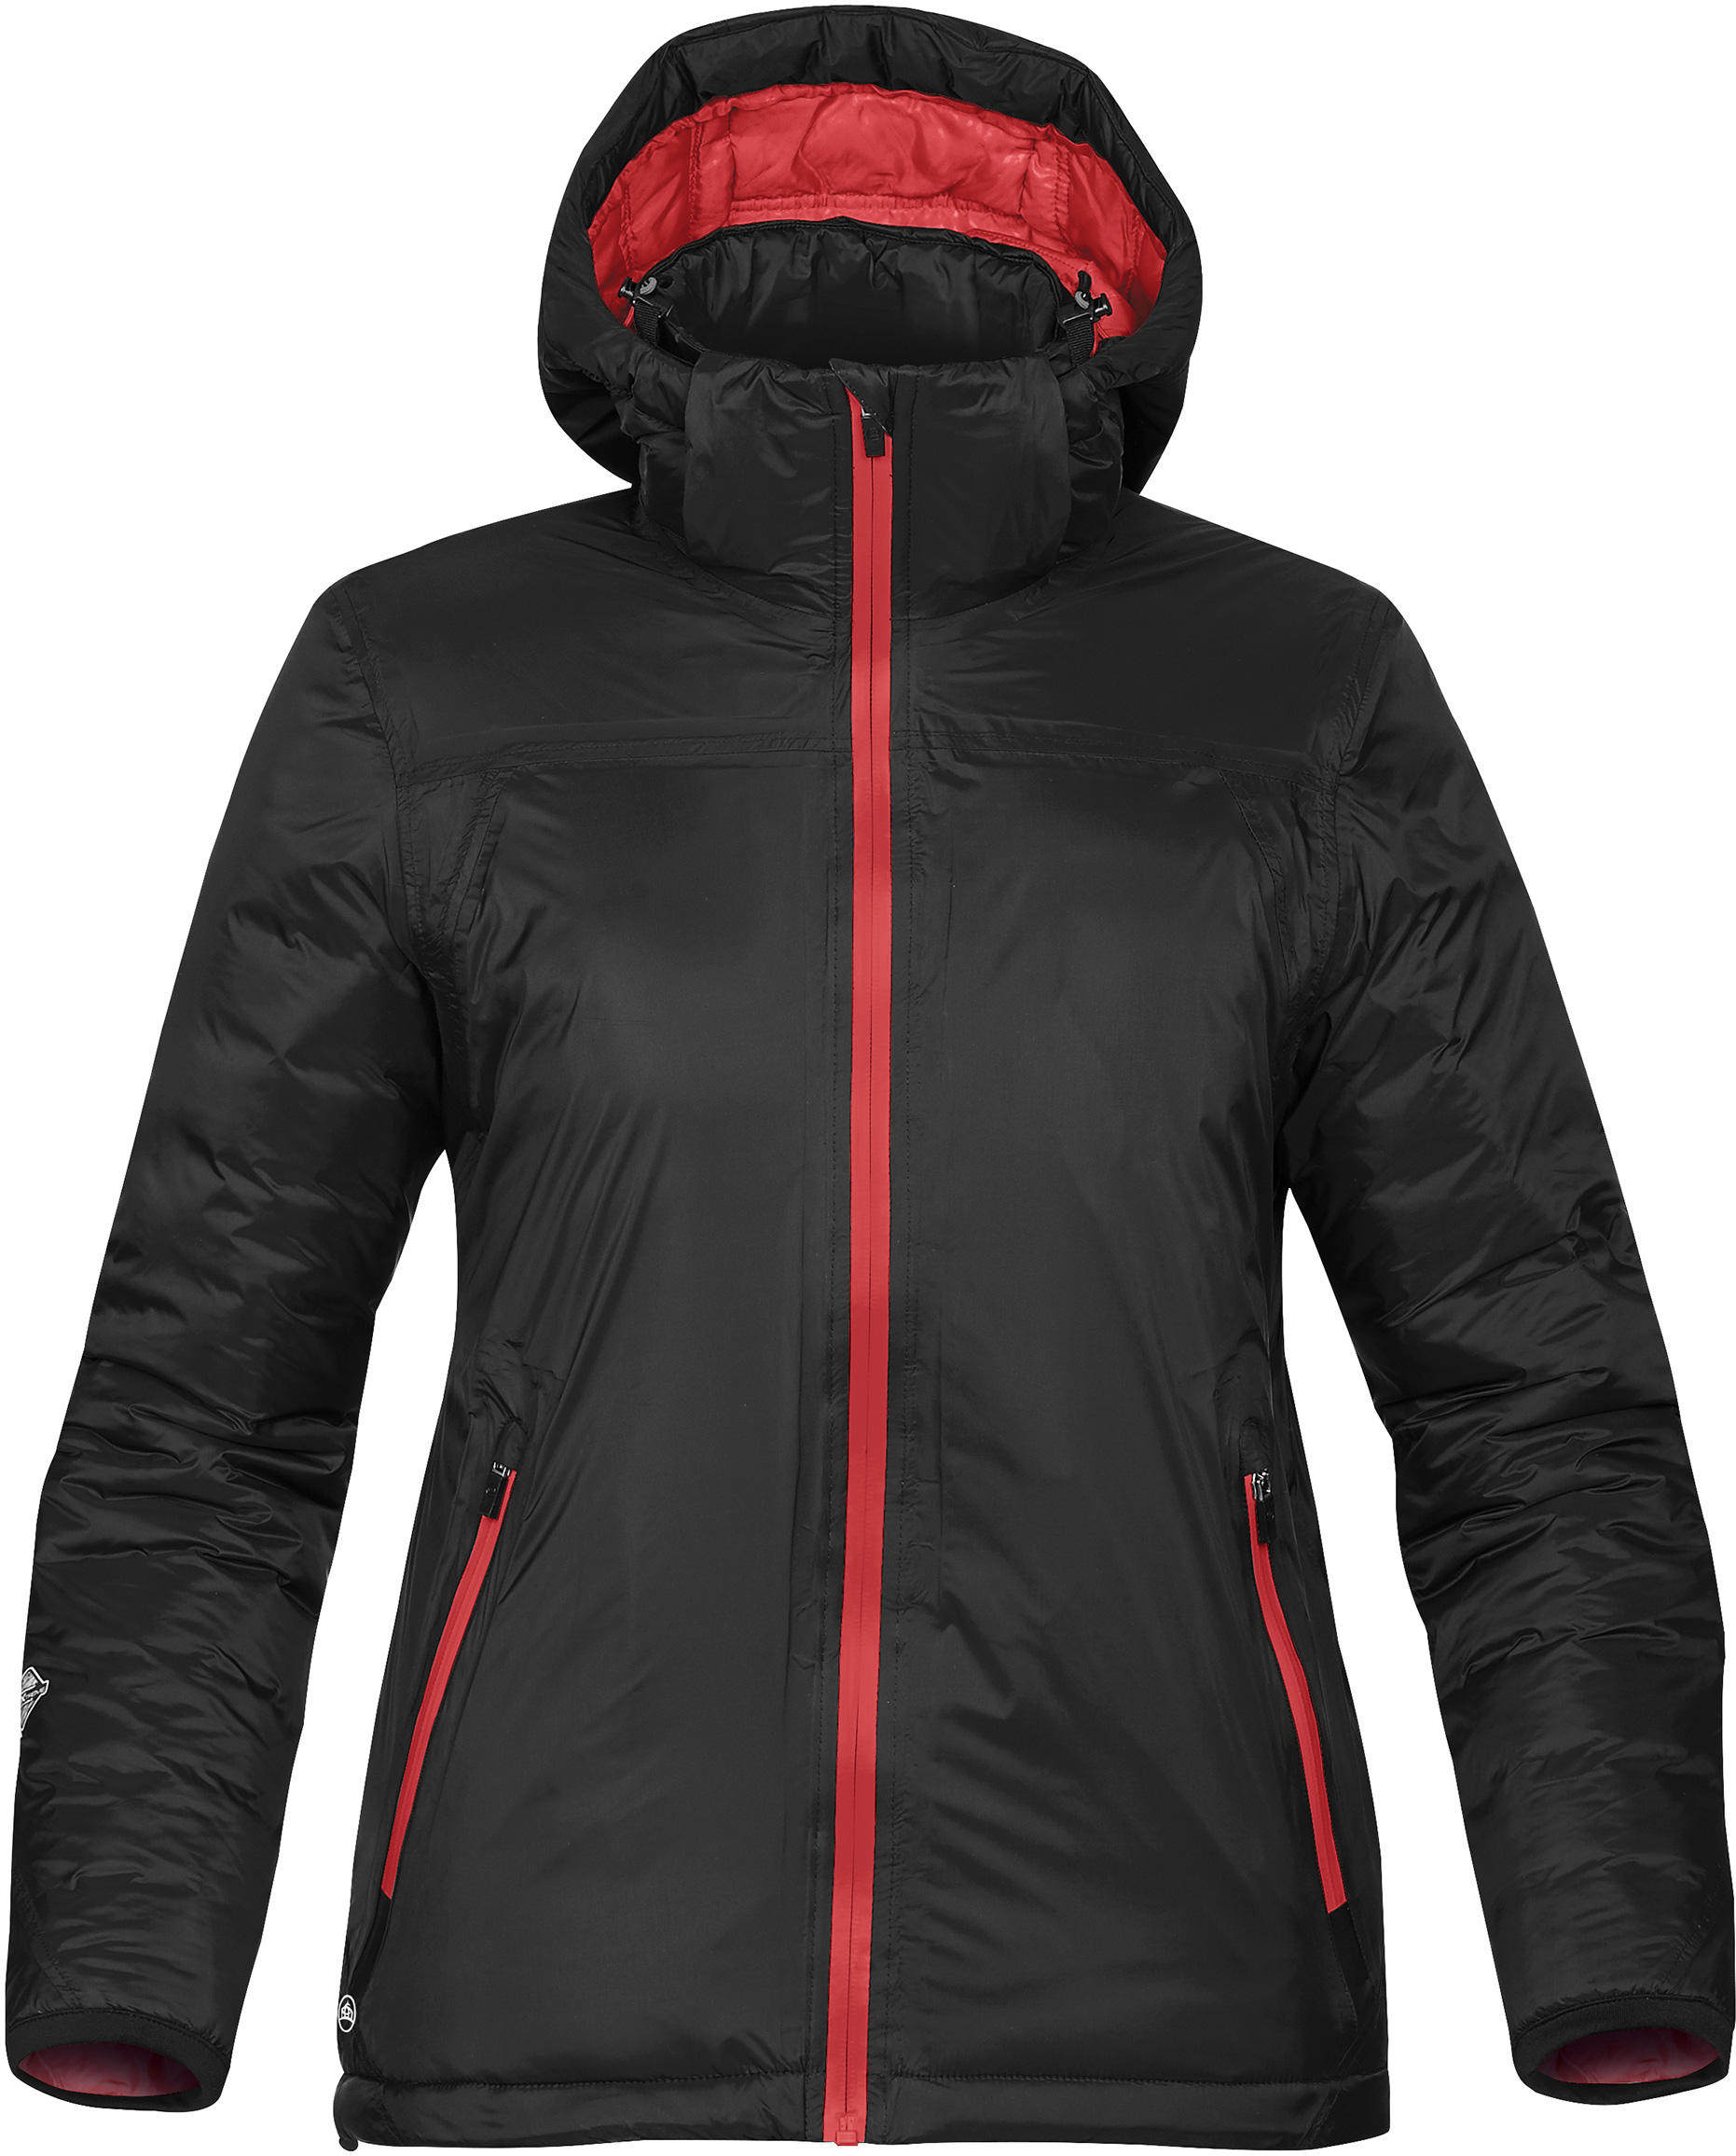 Stormtech X-1W - Women's Black Ice Thermal Jacket